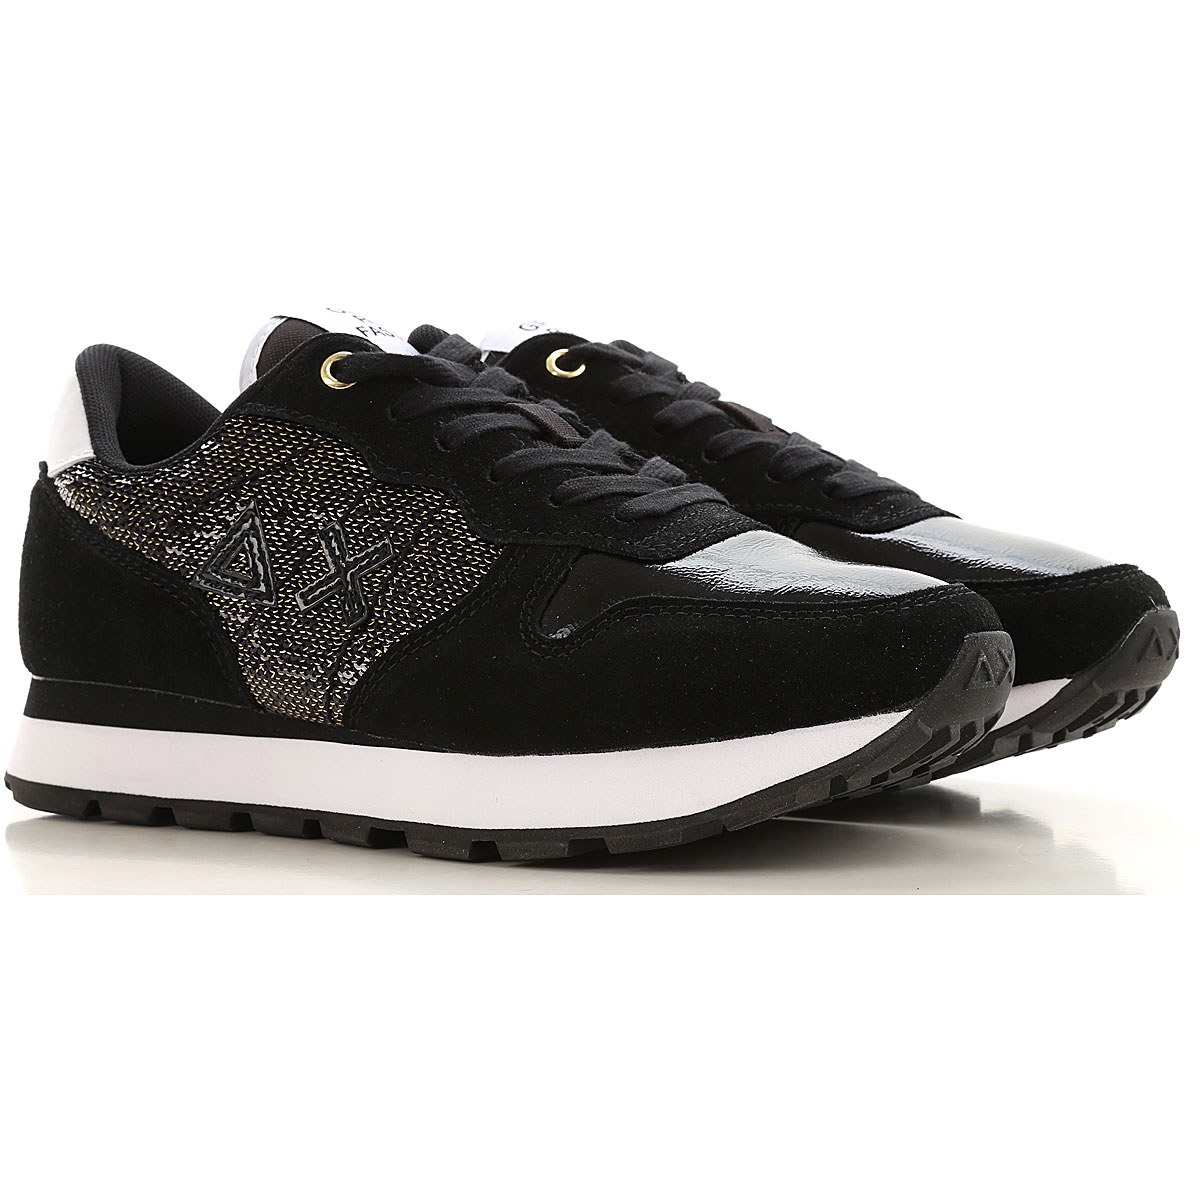 Sun68 Sneakers for Women On Sale, Black, Leather, 2019, 10 8 9